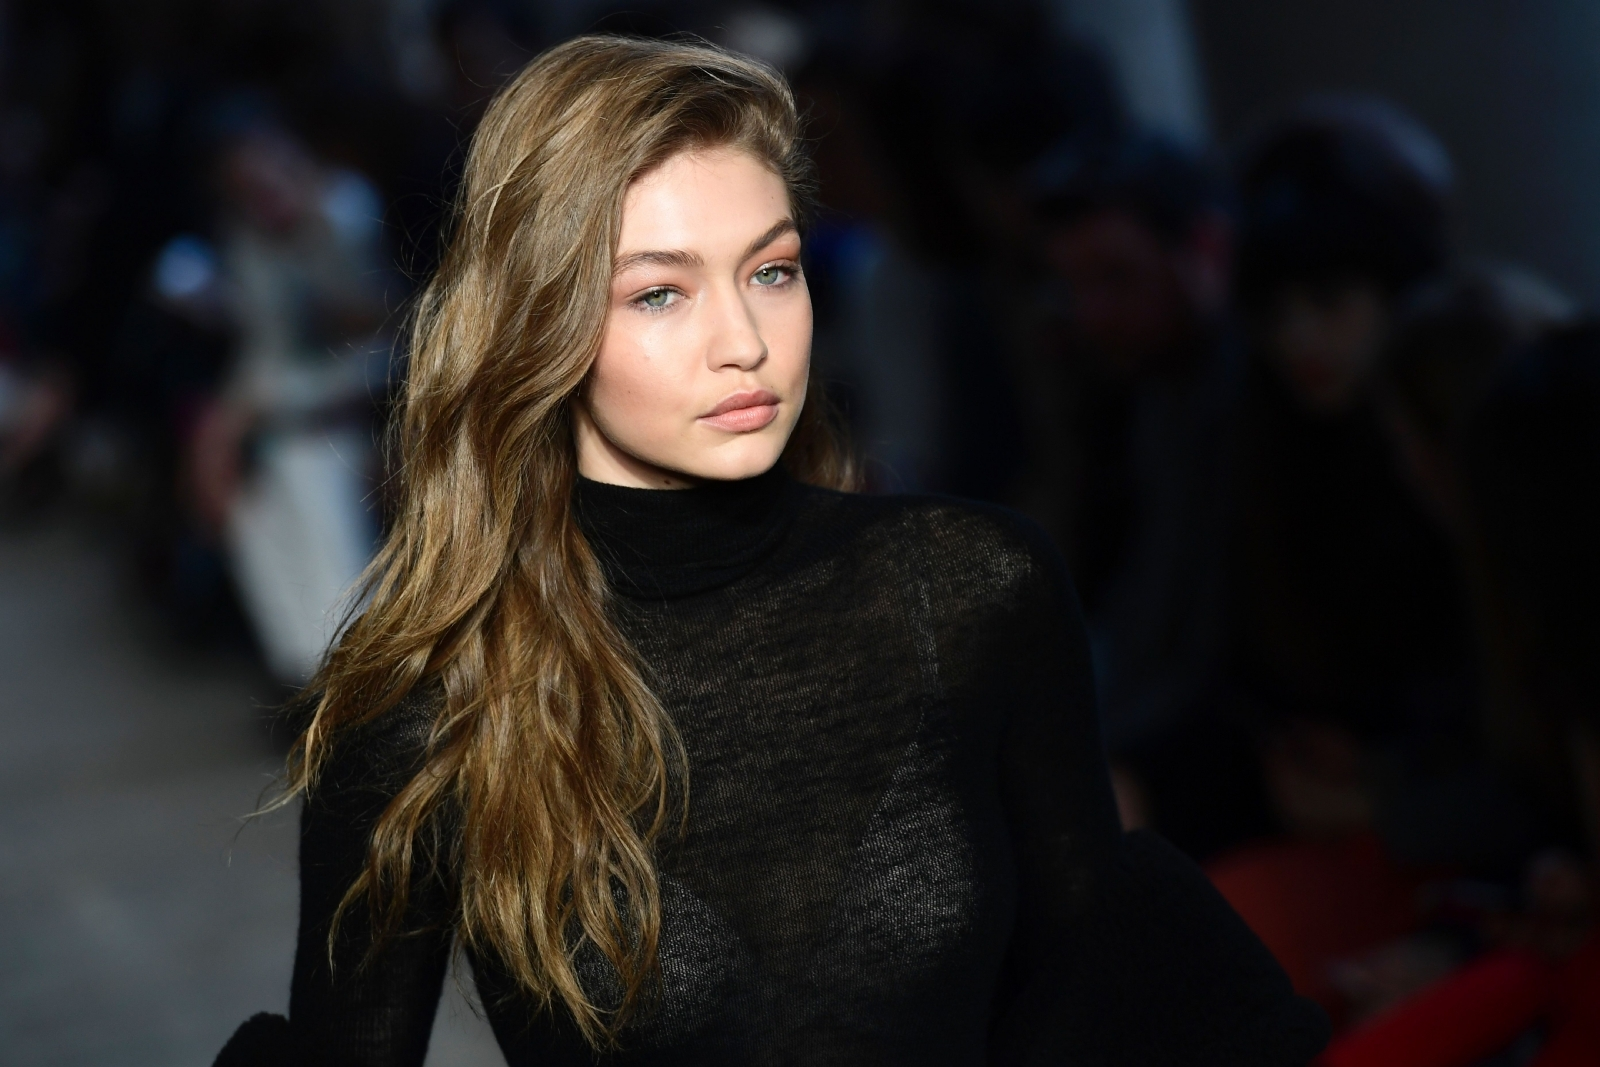 'Respect to my Asian fans': Gigi Hadid responds to Chinese fans' backlash over racist video